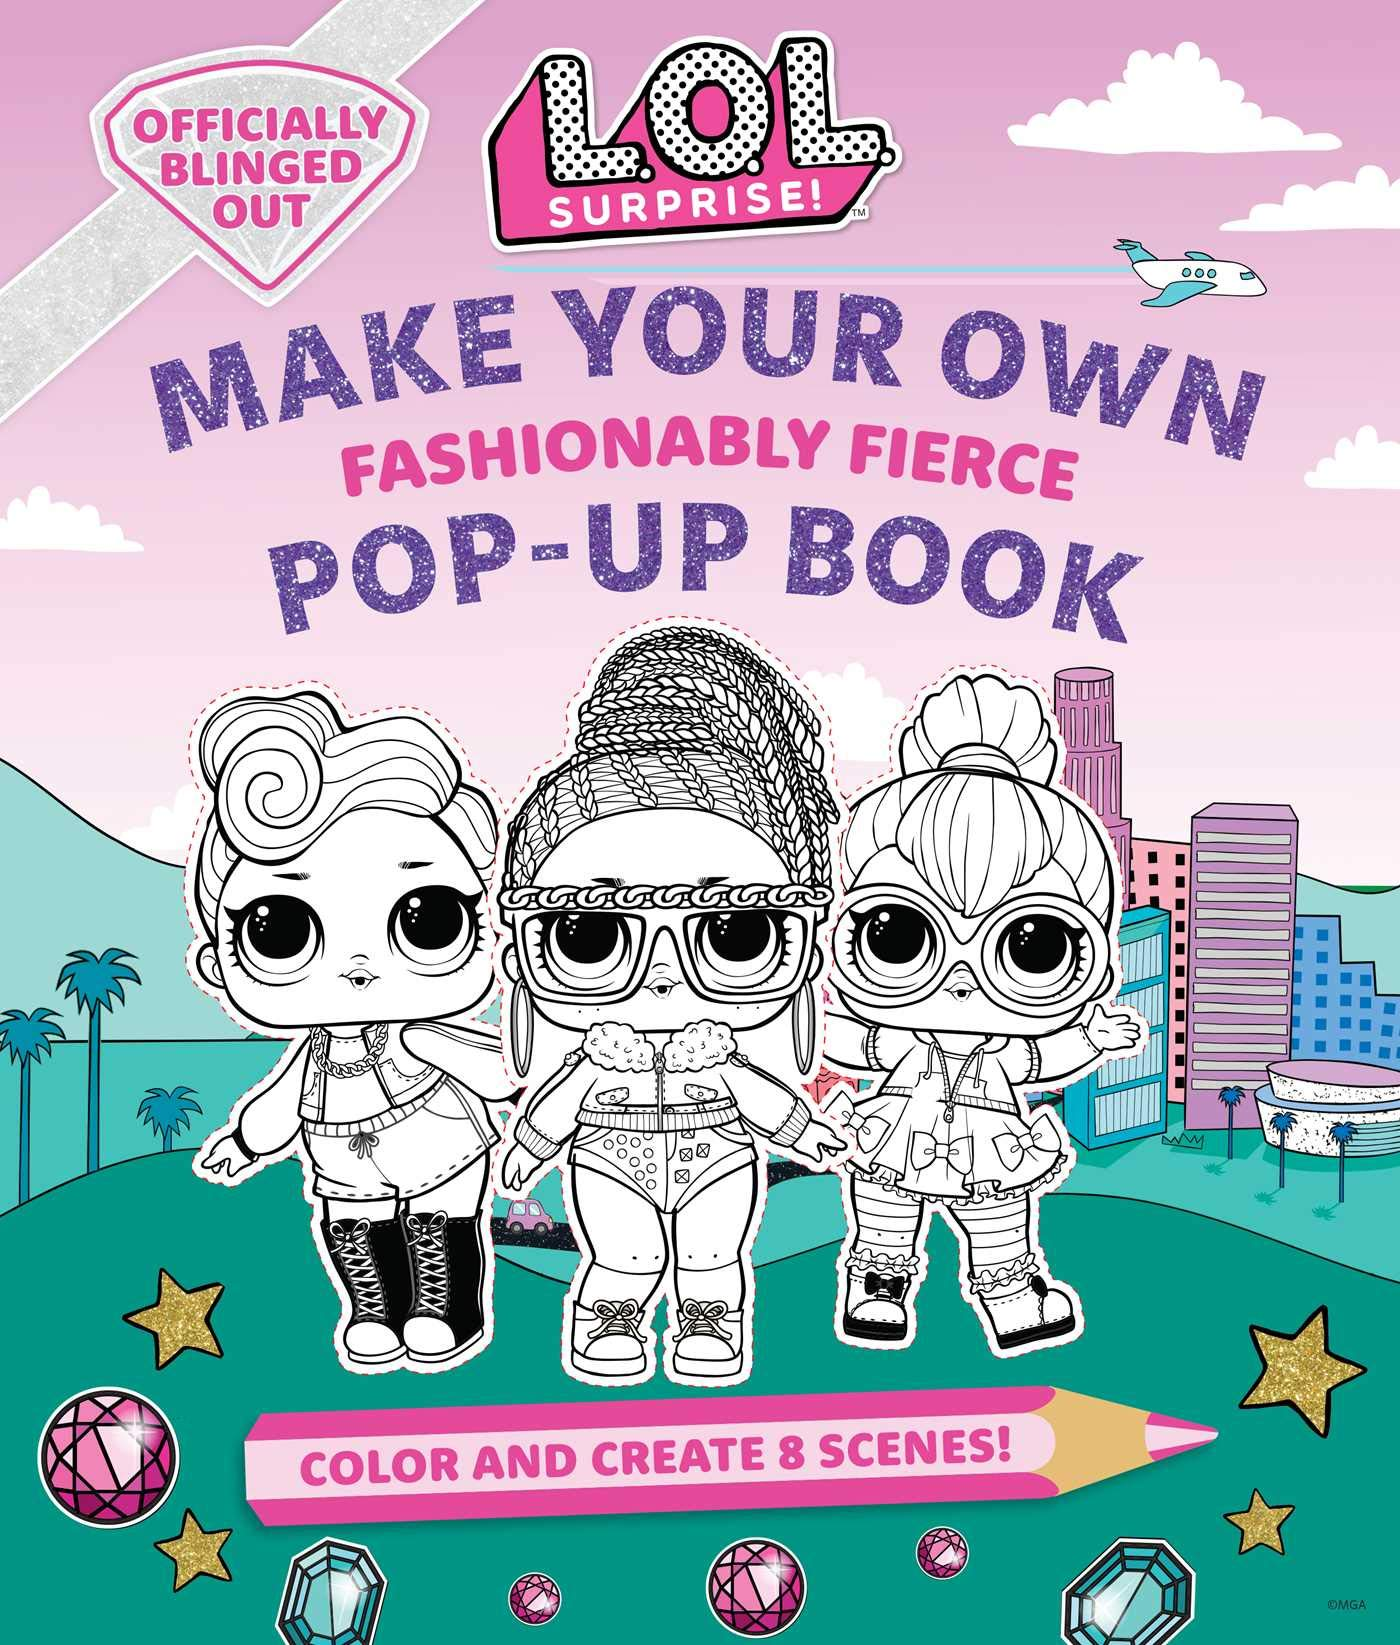 L.O.L. Surprise!: Make Your Own Pop-Up Book: Fashionably Fierce:   LOL Surprise Activity Book   Gifts for Girls Aged 5+   Coloring Book